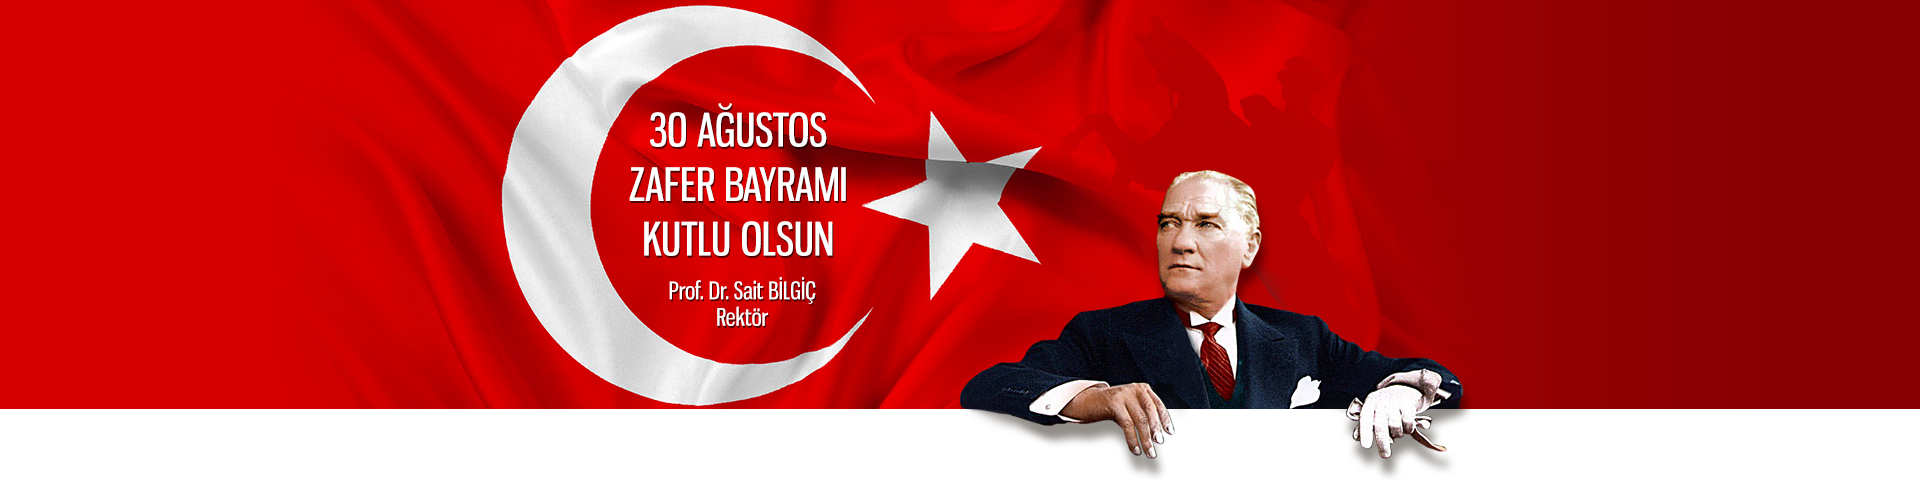 http://www.omu.edu.tr/sites/default/files/files/30_agustos_zafer_bayrami_kutlu_olsun/30agustos-slider1.jpg